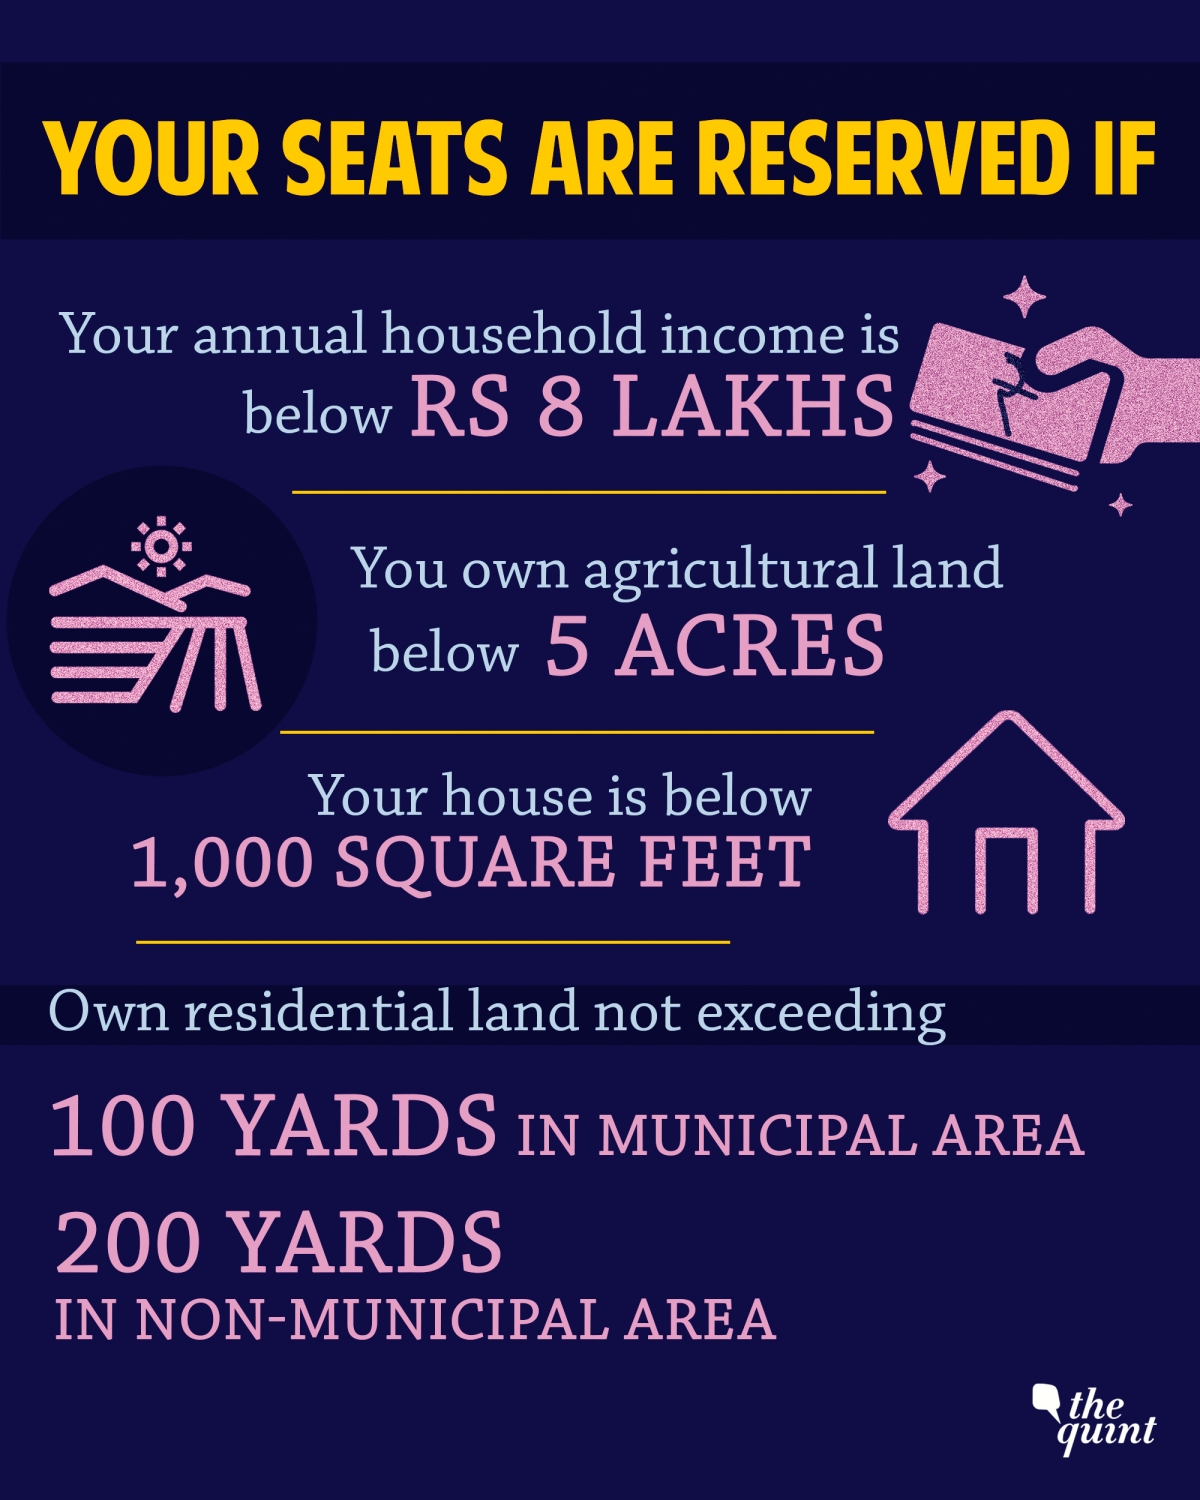 10% Reservation for Economically Weaker Sections: Who's